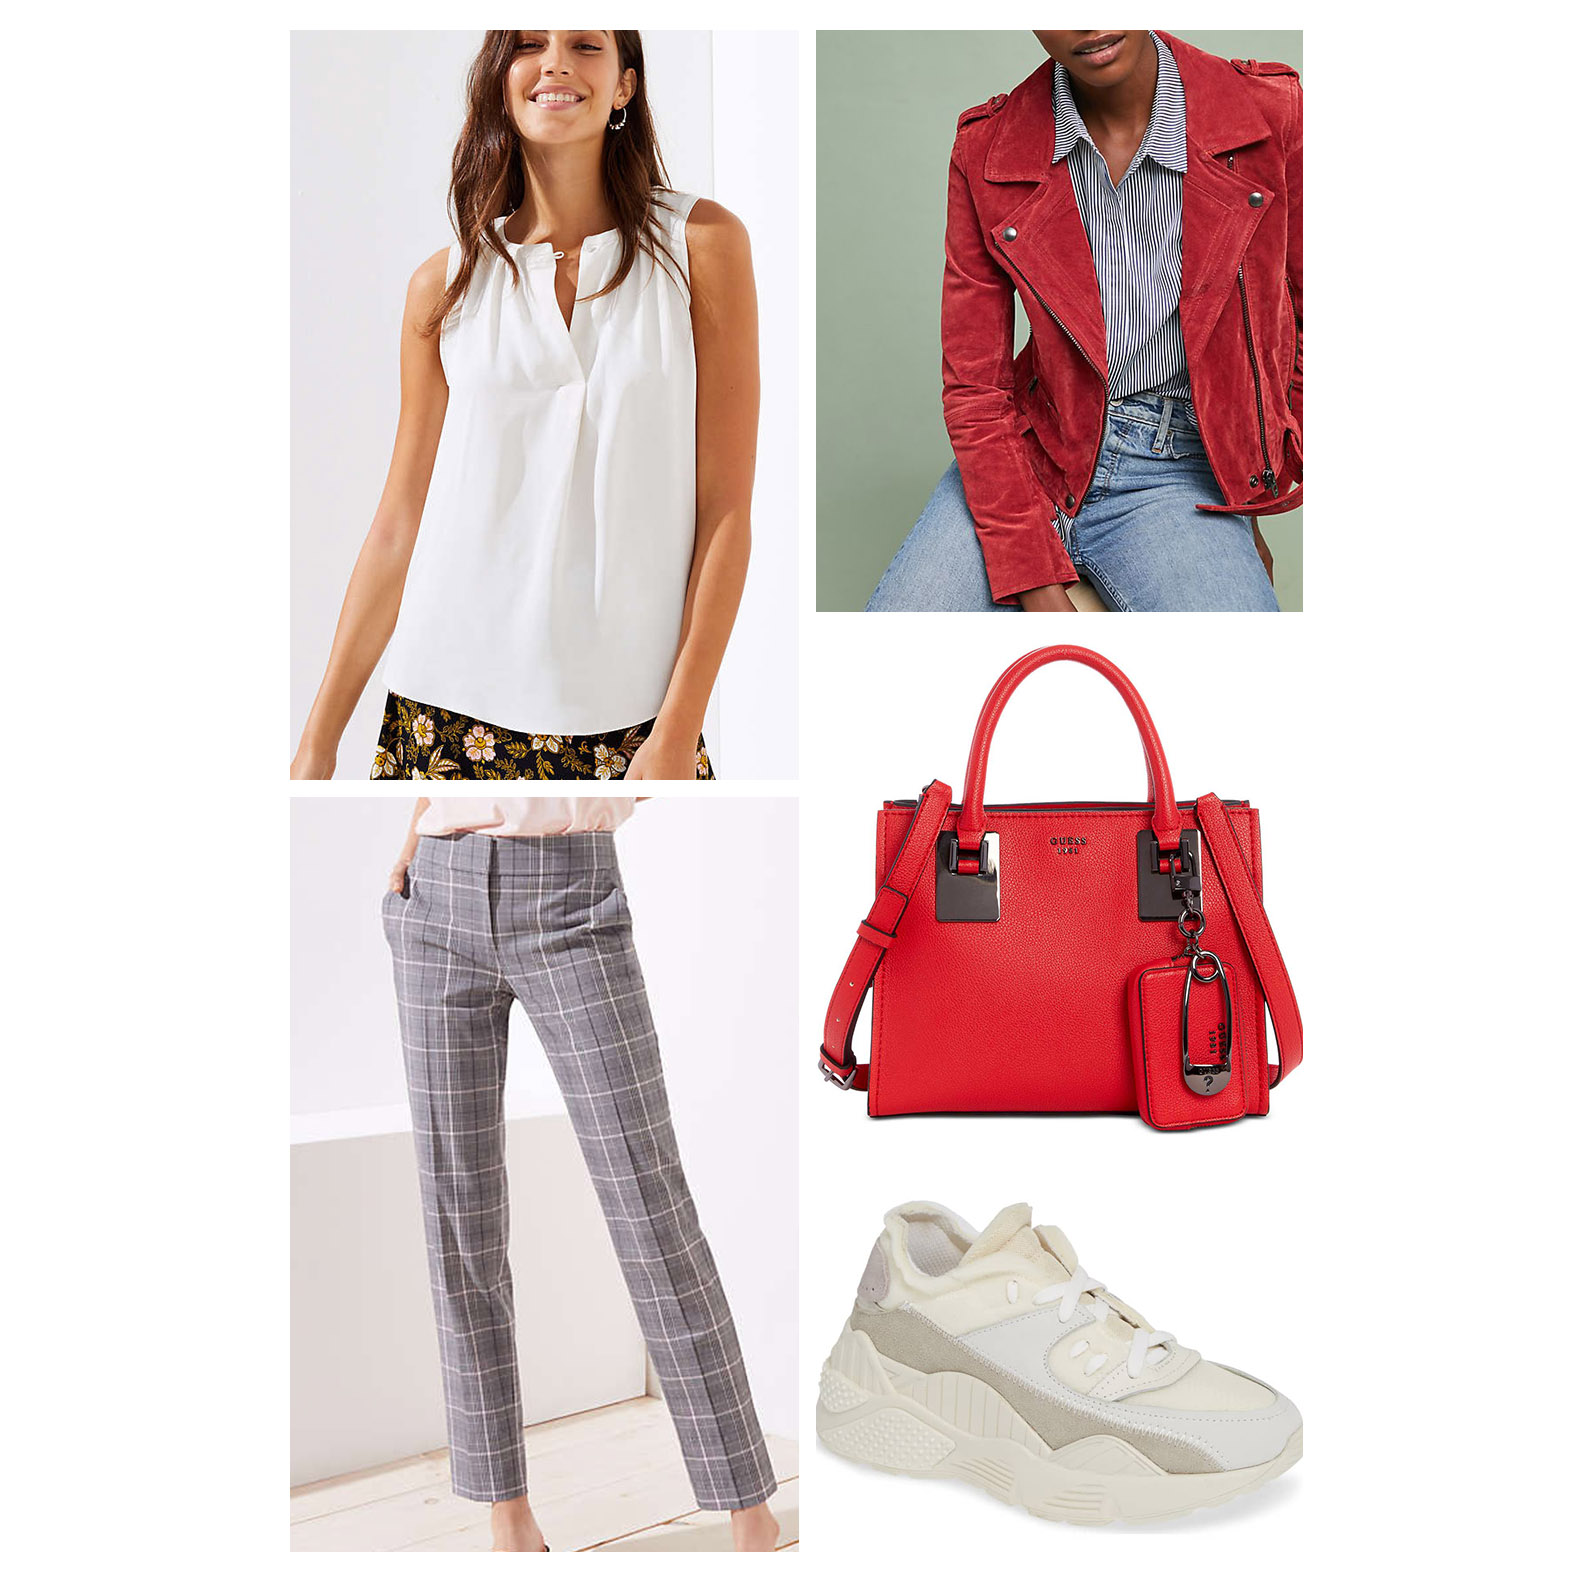 Fall lunch outfit idea - wear gray plaid pants, a white blouse, red suede moto jacket, white dad sneakers, and a red handbag!